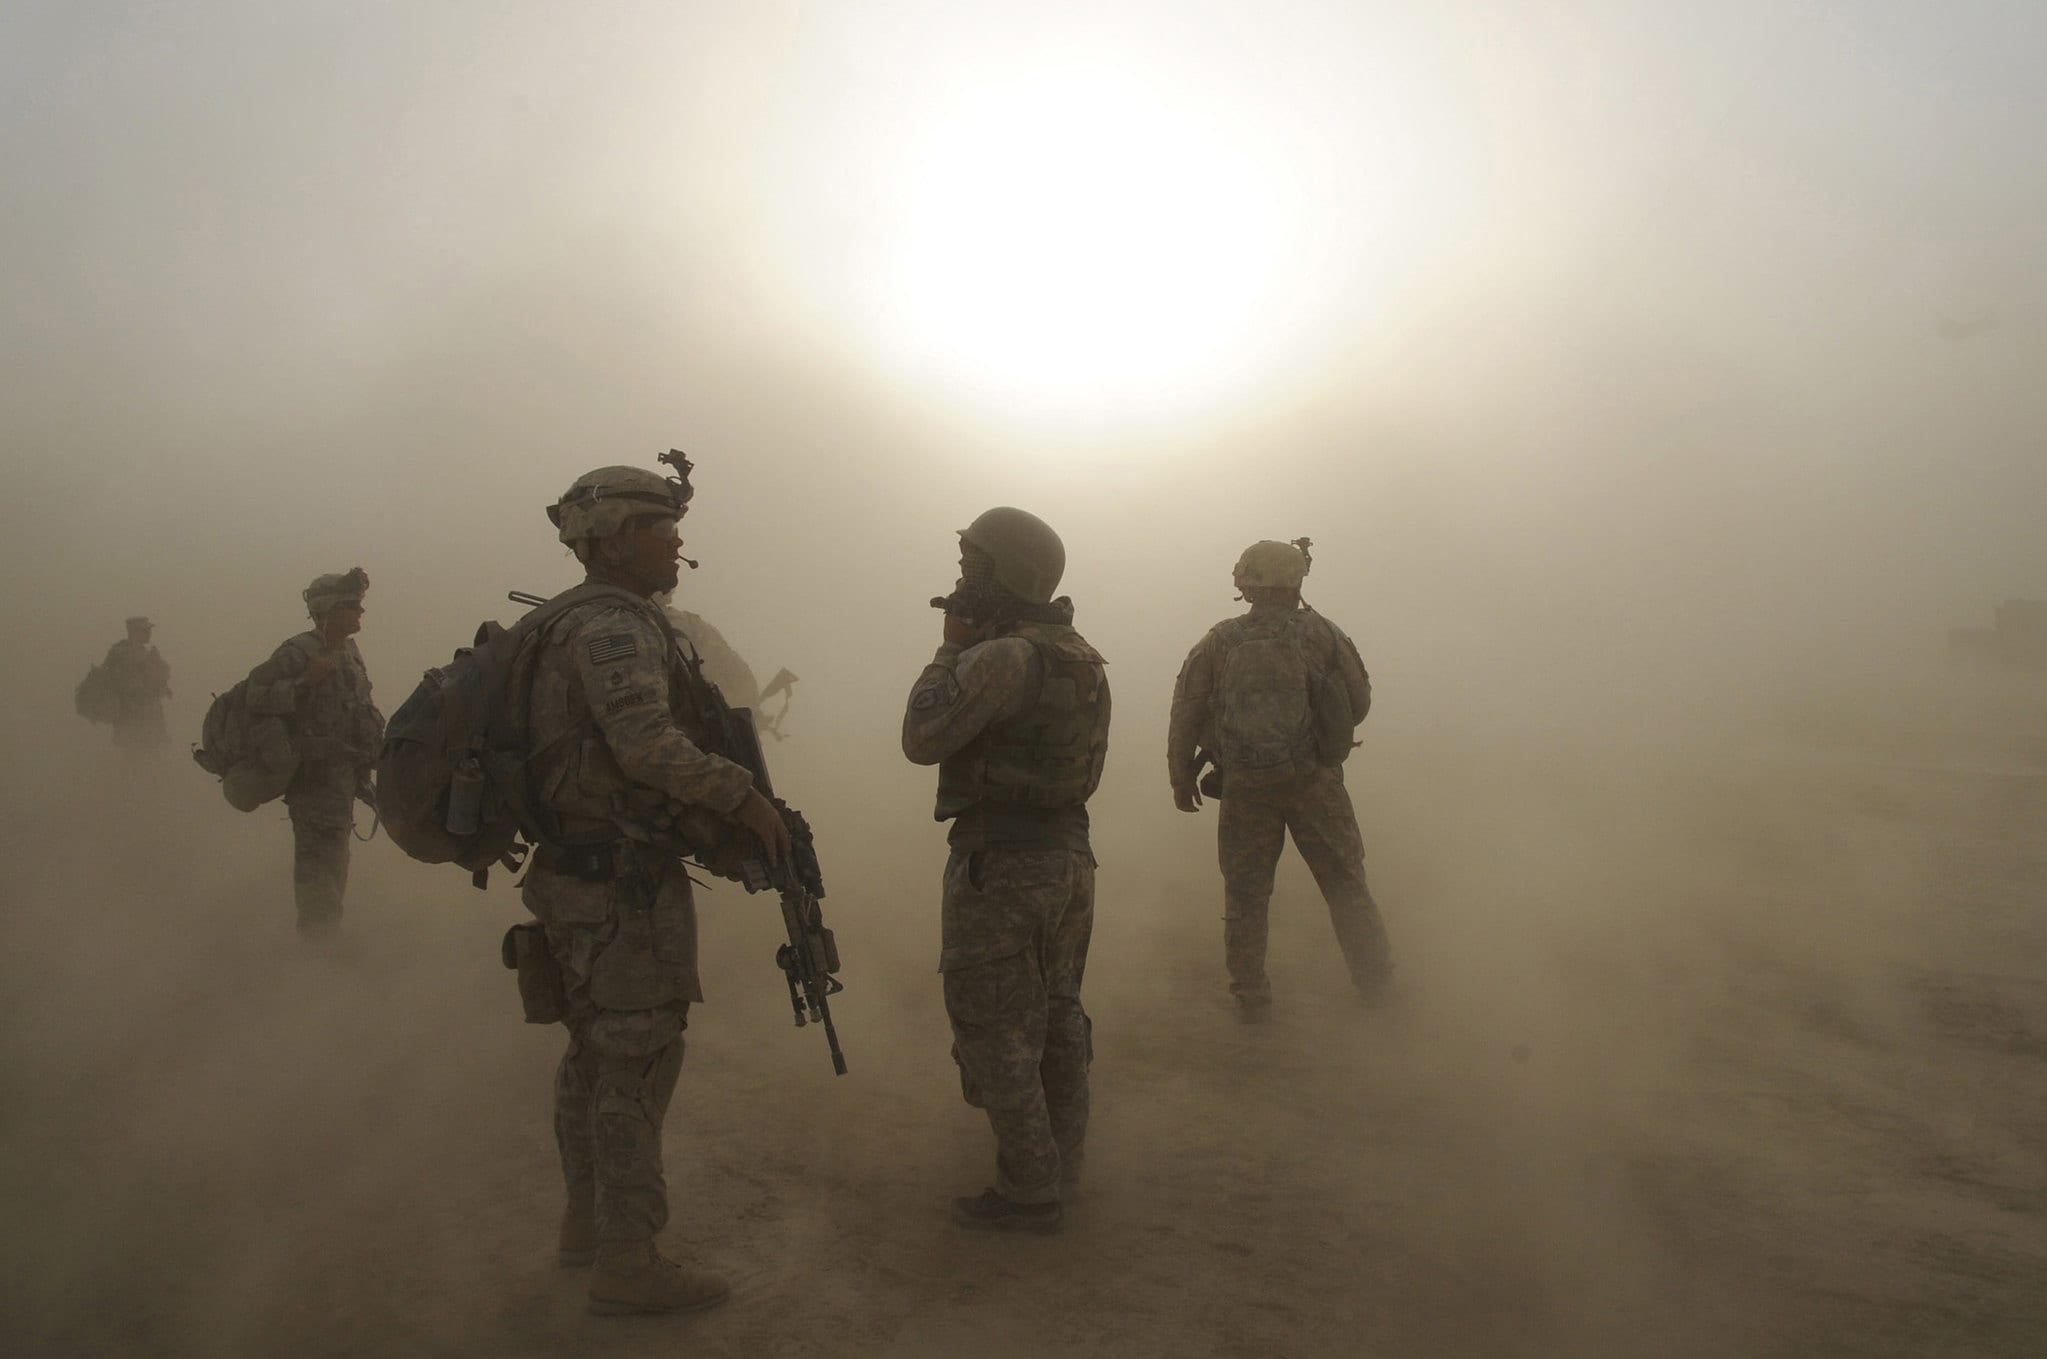 Biden plans to withdraw U.S. forces from Afghanistan by Sept. 11, missing May deadline